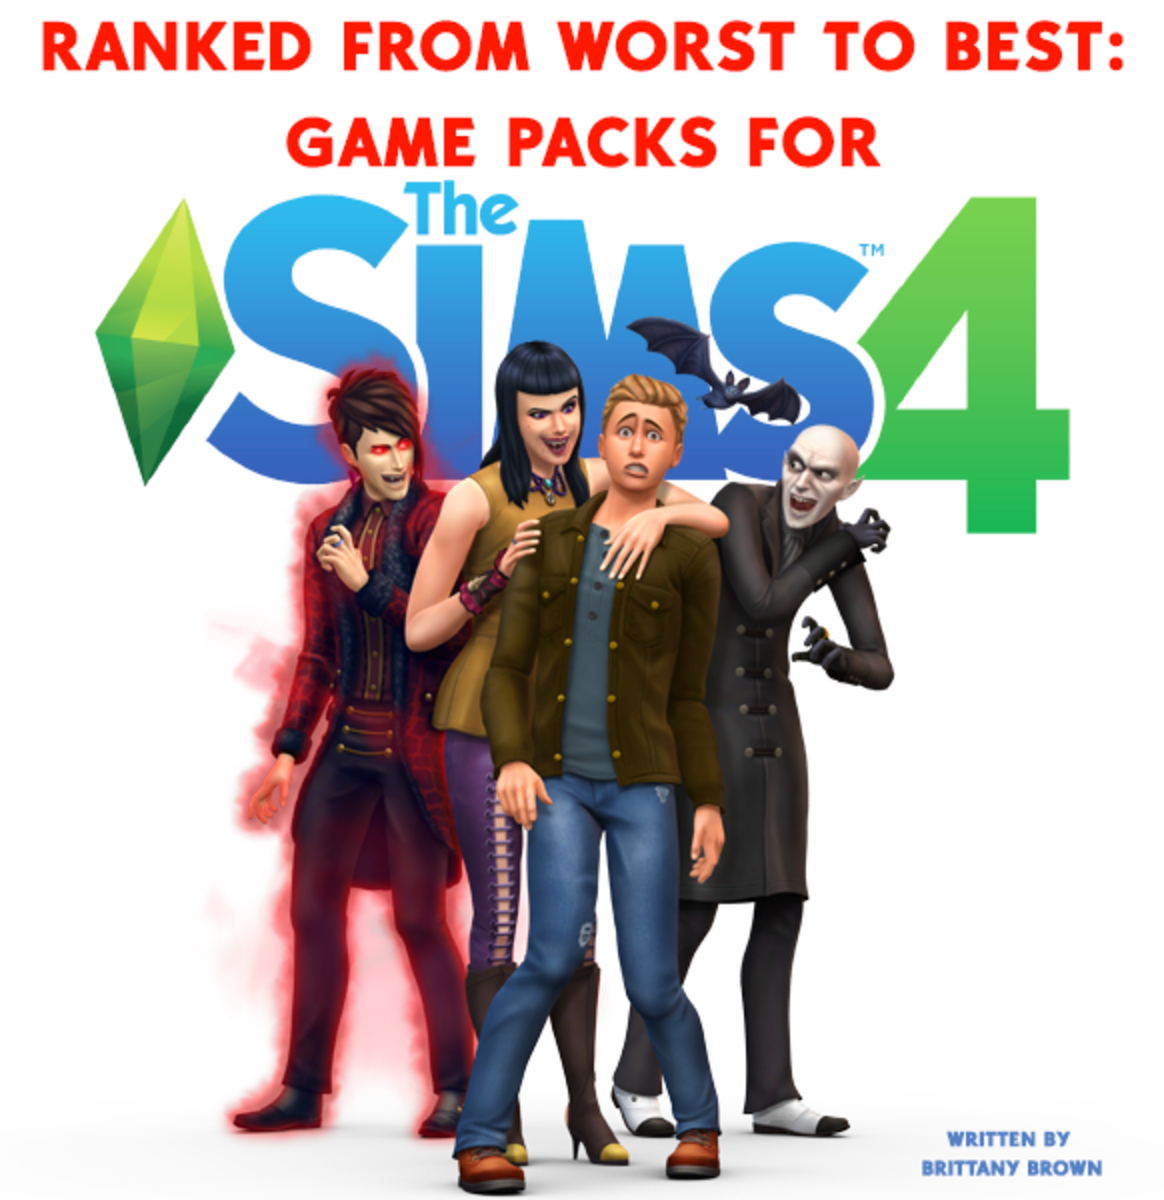 The best and worst game packs for The Sims 4!